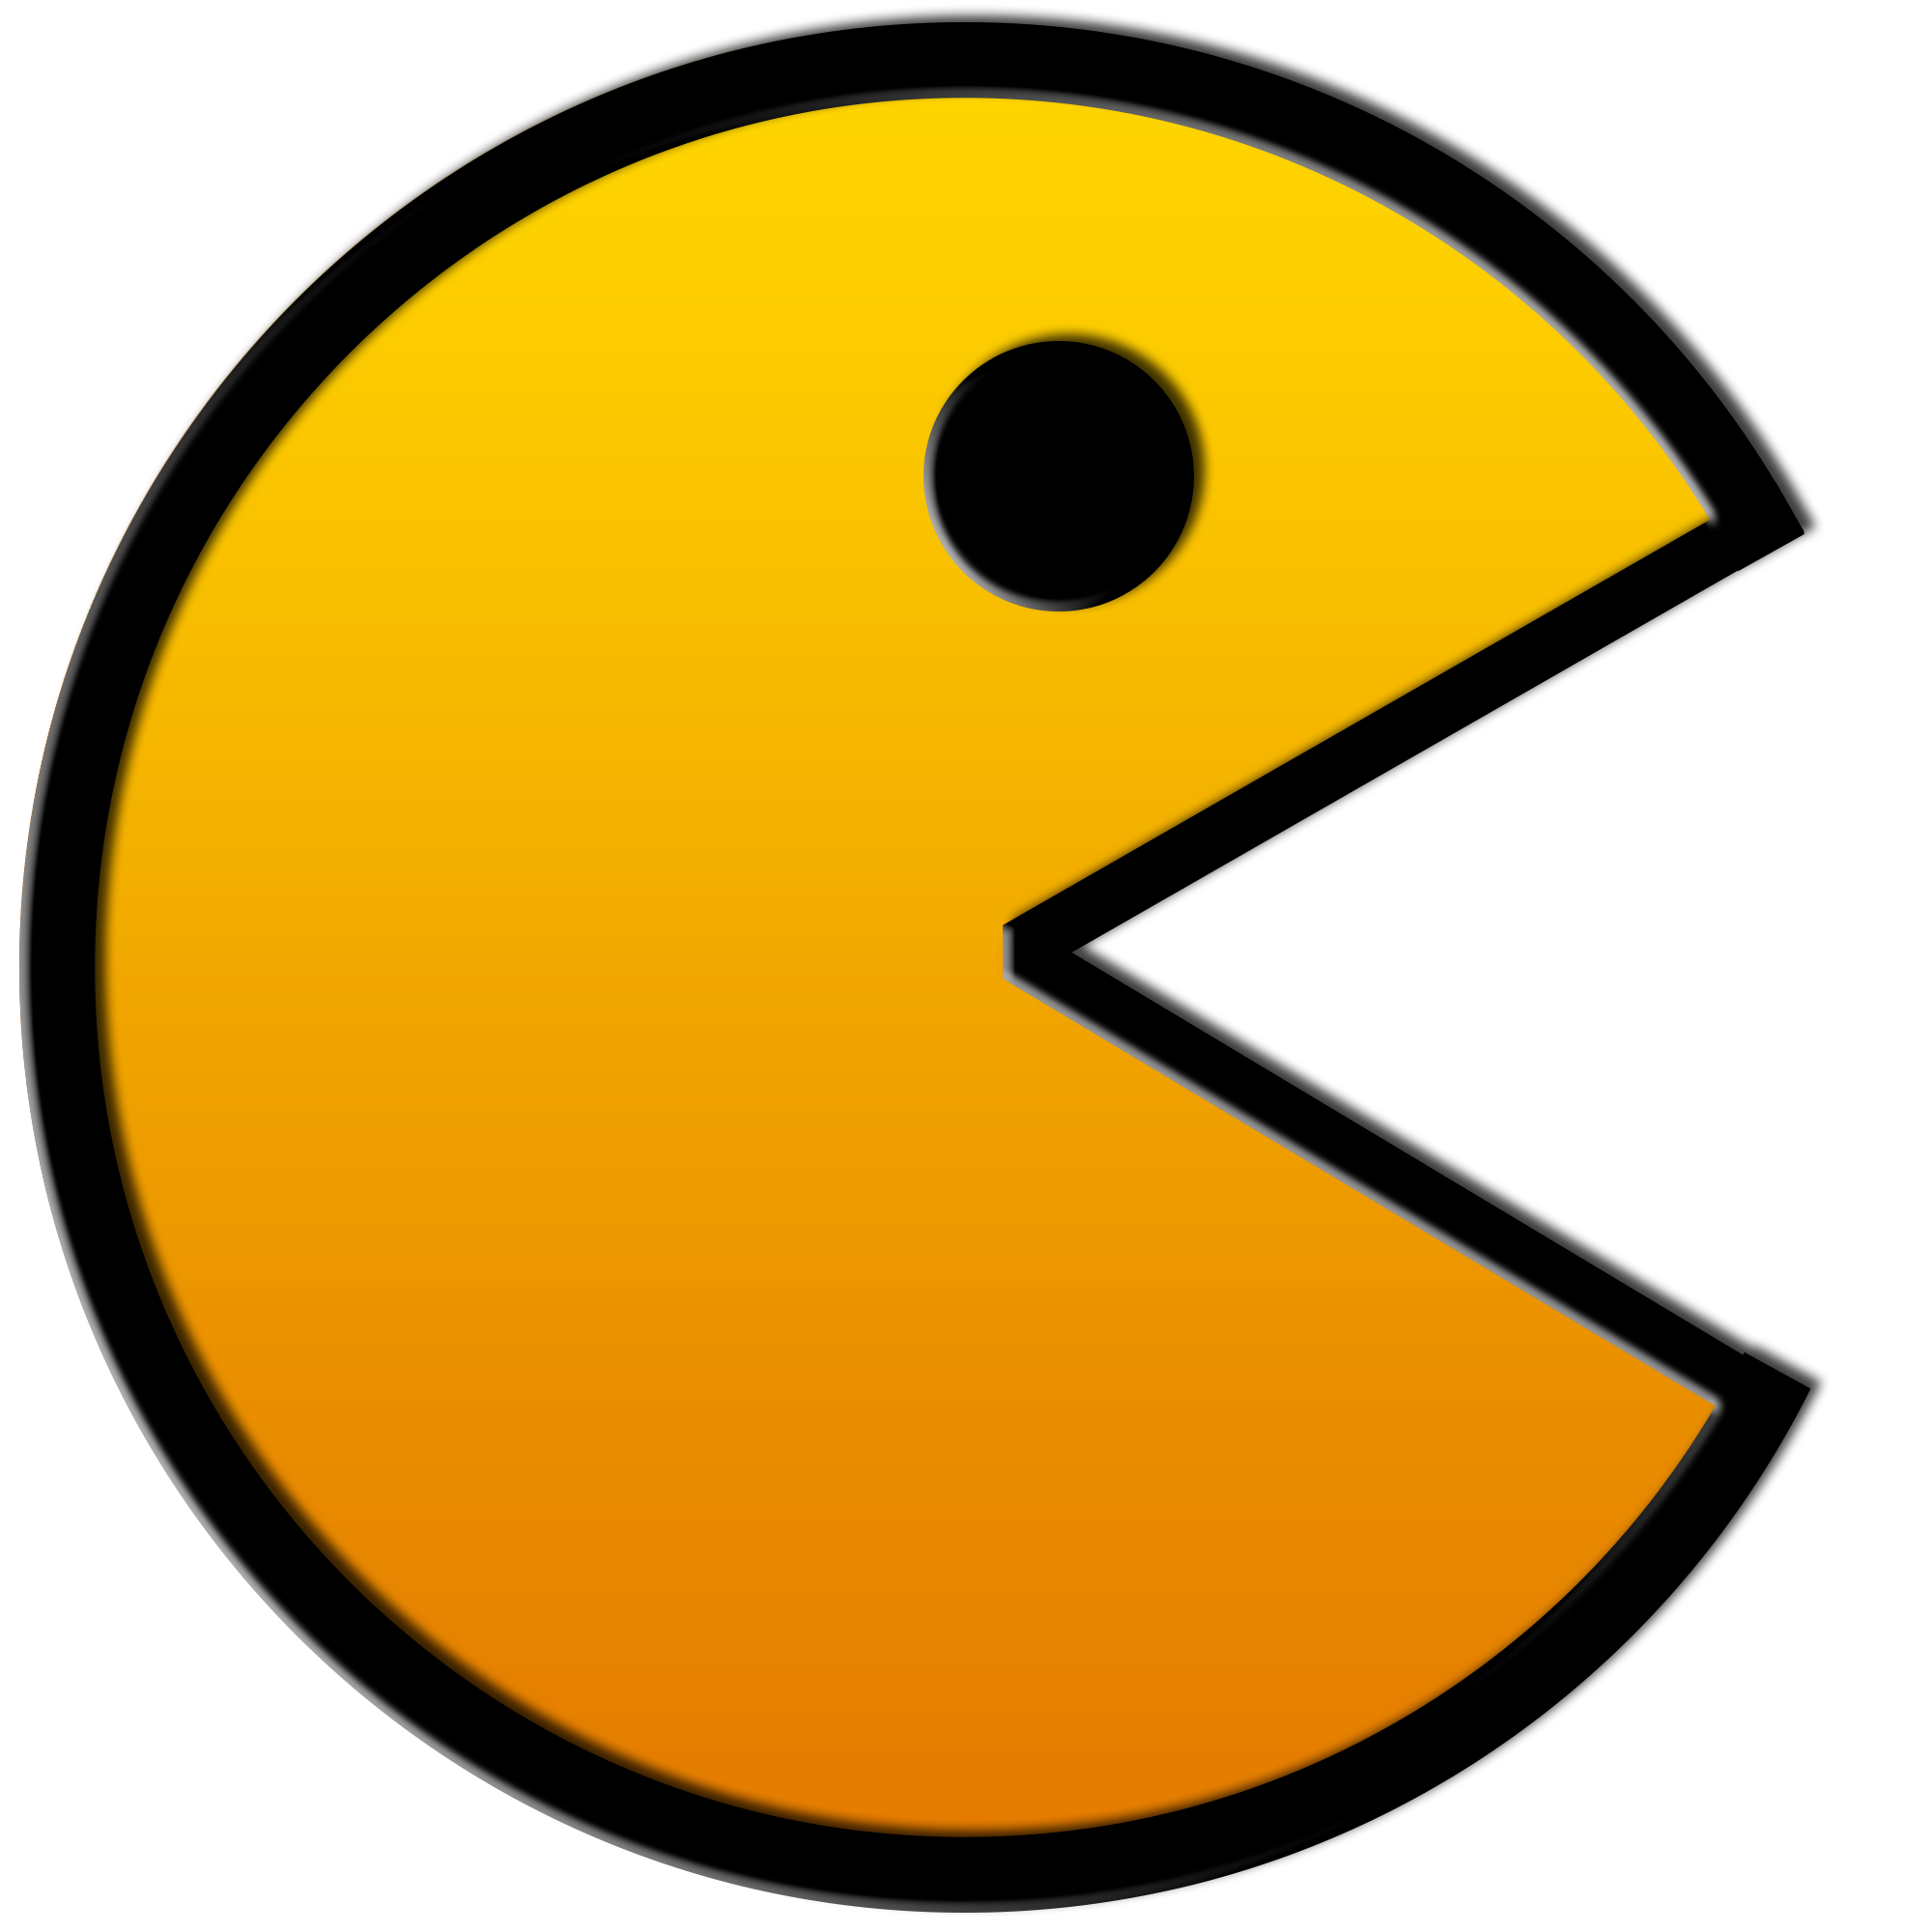 pac man Animation pac-man (1982) pac-man marty ingles (voice actor) pac-man ( 1982)  pacman saves pacworld from ghosts with his friends cyli and spiral.